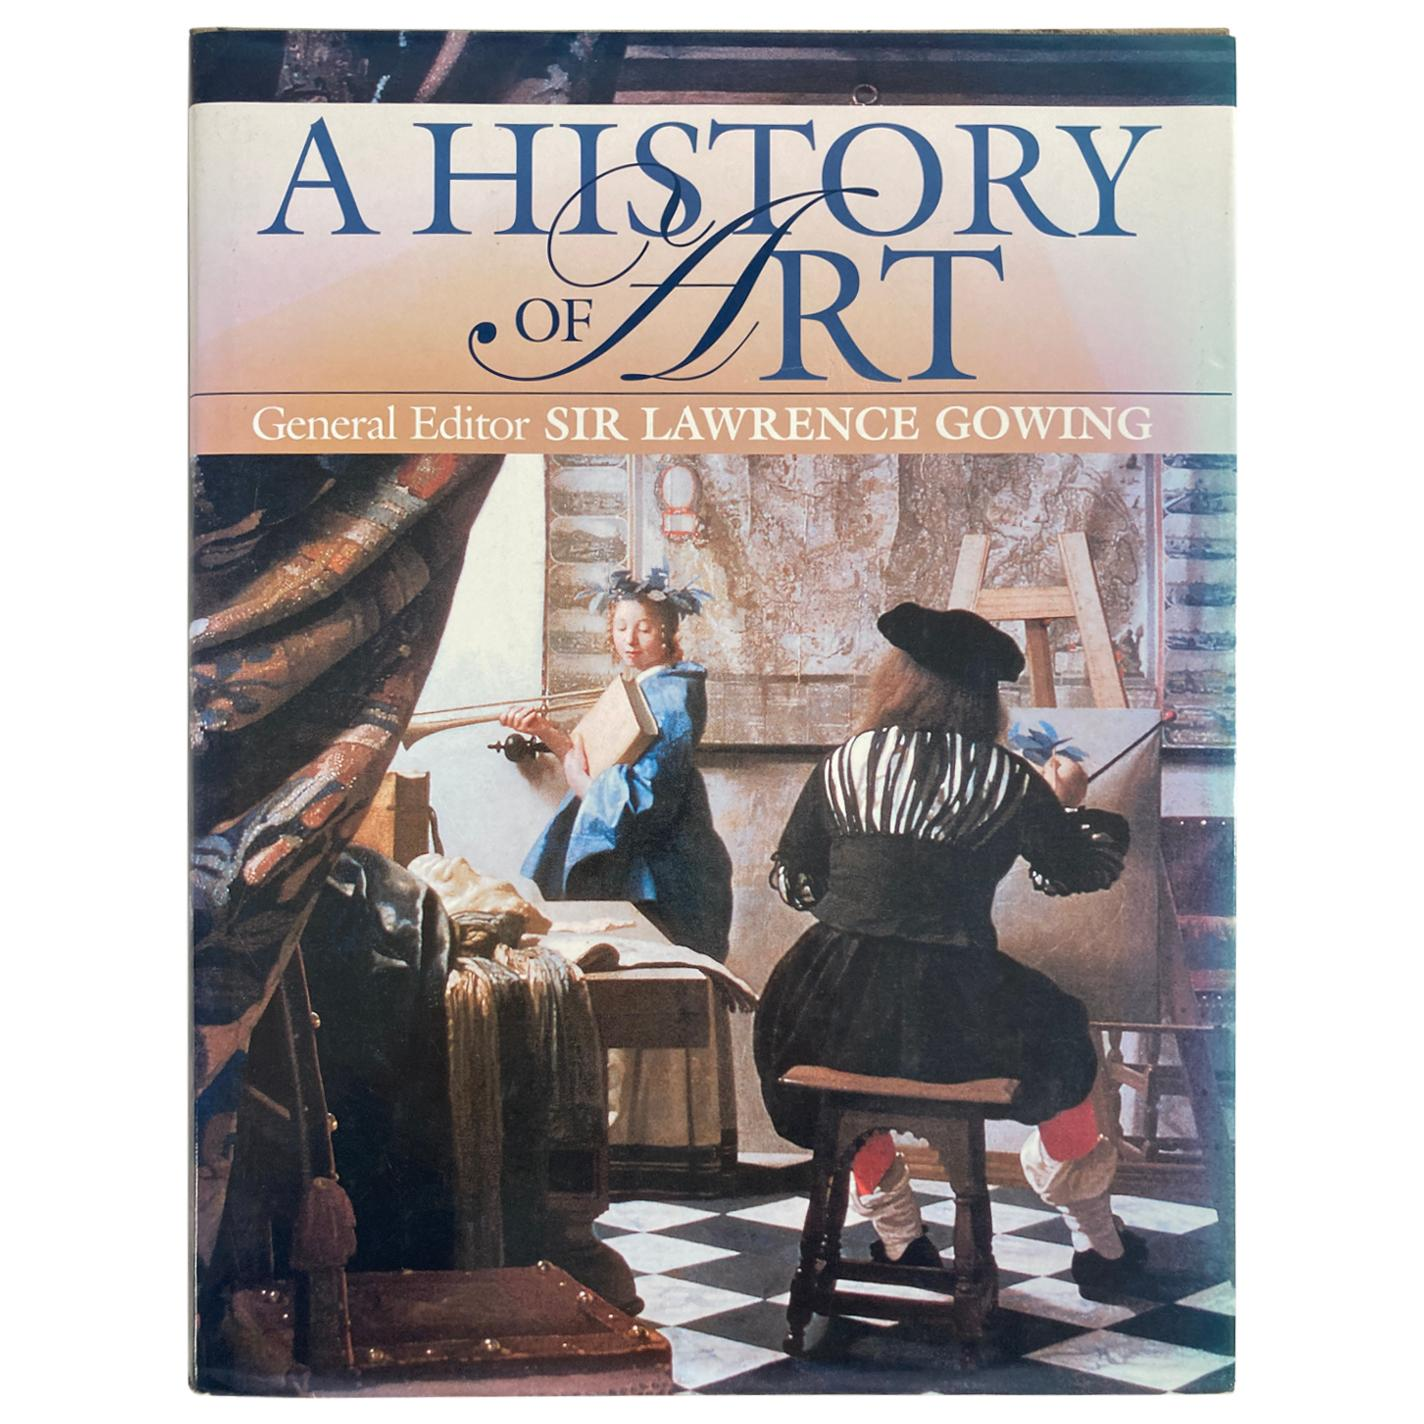 A History of Art by Lawrence Gowing Large Heavy Art Table Book